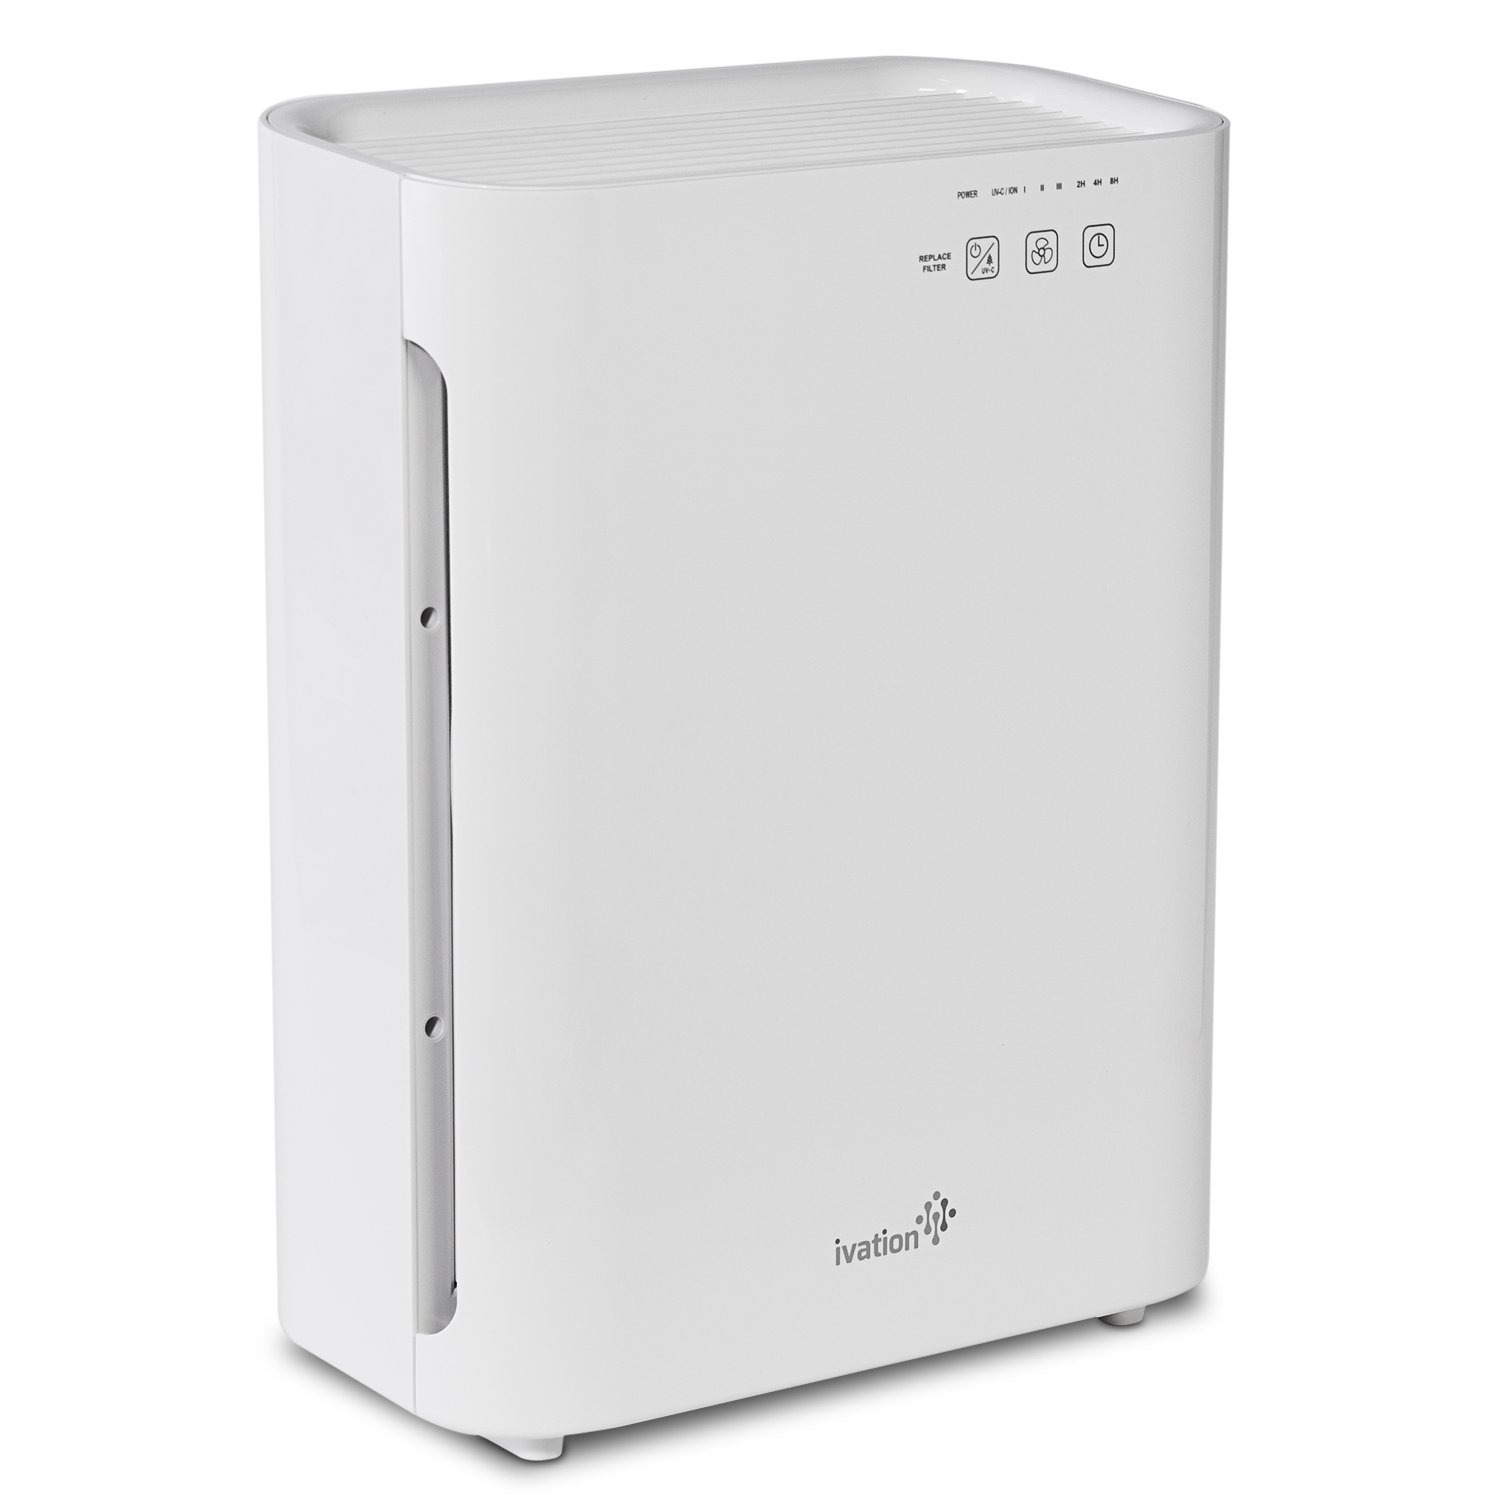 Ivation Medium Size 3-in-1 True HEPA Air Purifier Sanitizer and Deodorizer with UV Light - True HEPA Filter, Active Carbon Filter and UV Light Cleaner for Home or Office - 323 Sq/Ft Coverage, White